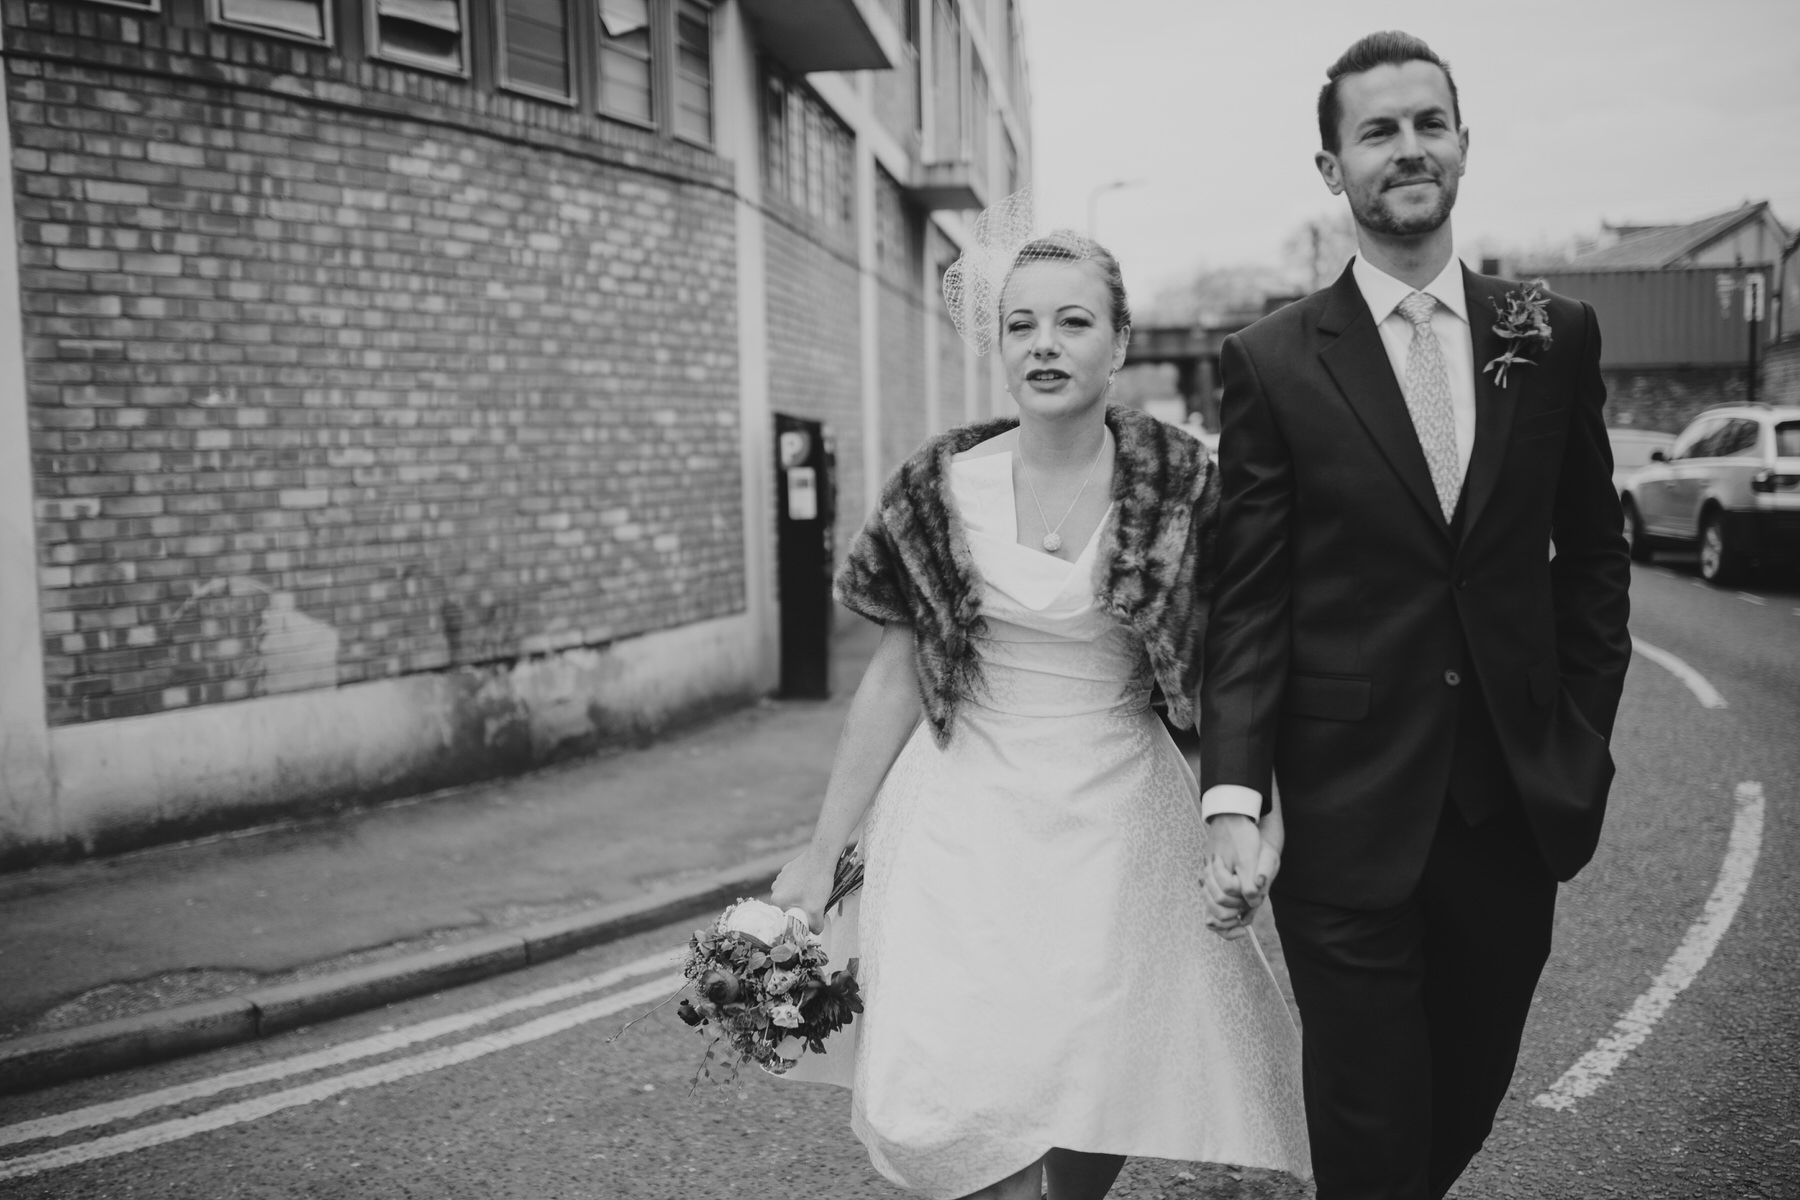 MS-Londesborough-Pub-wedding-Hackney-alternative-photographer-61-BW-bride-wearing-fur-stole-over-wedding-dress-walking-groom-reportage.jpg